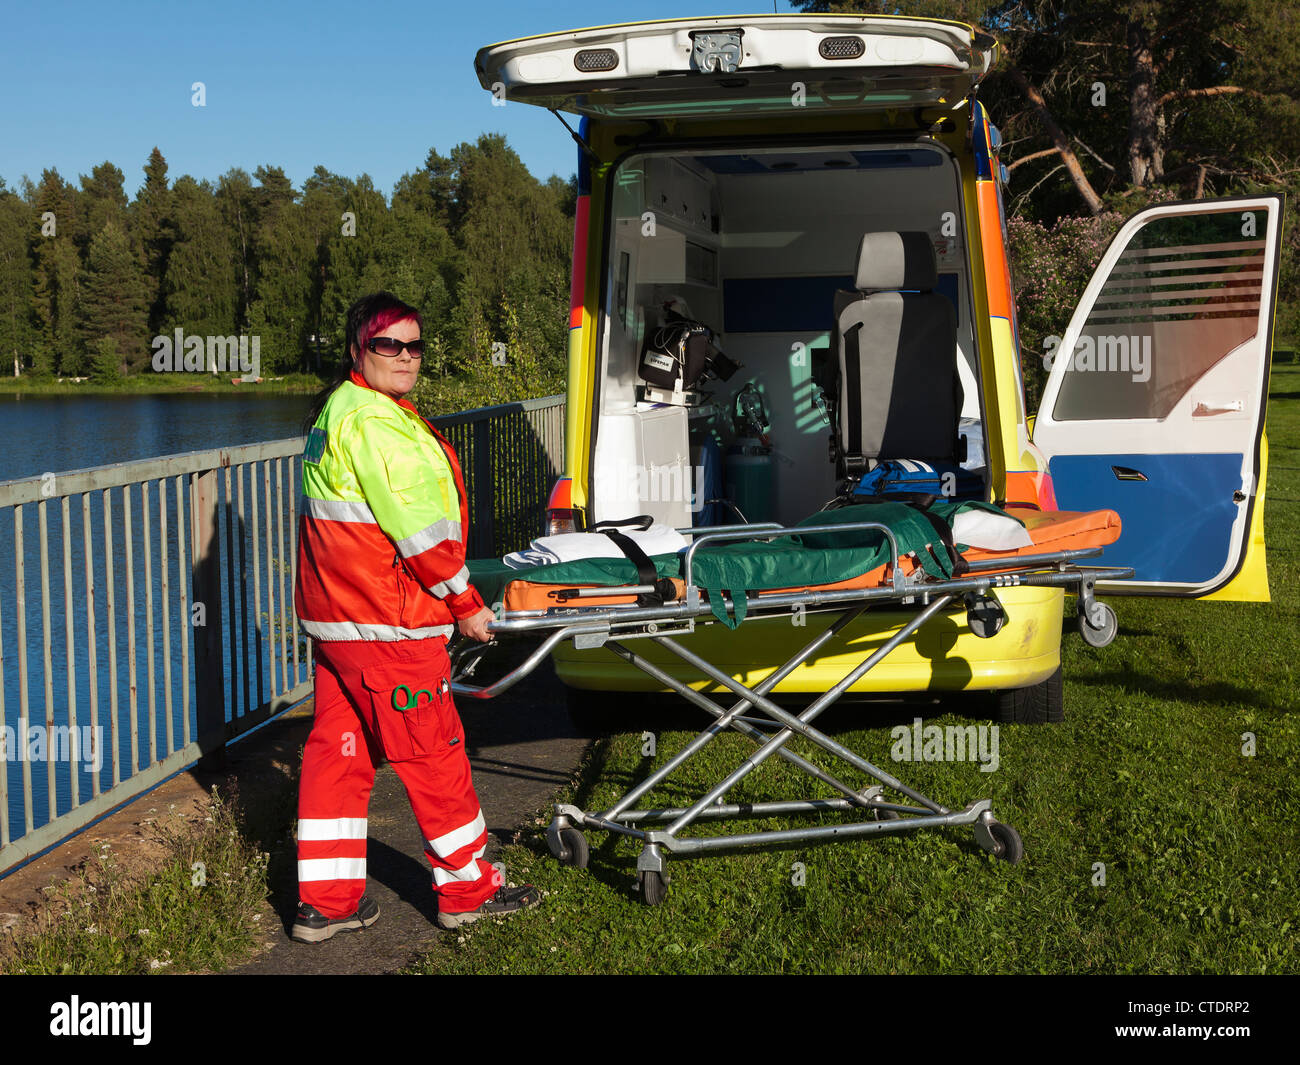 An ambulance and the paramedic by the lake in summer. - Stock Image